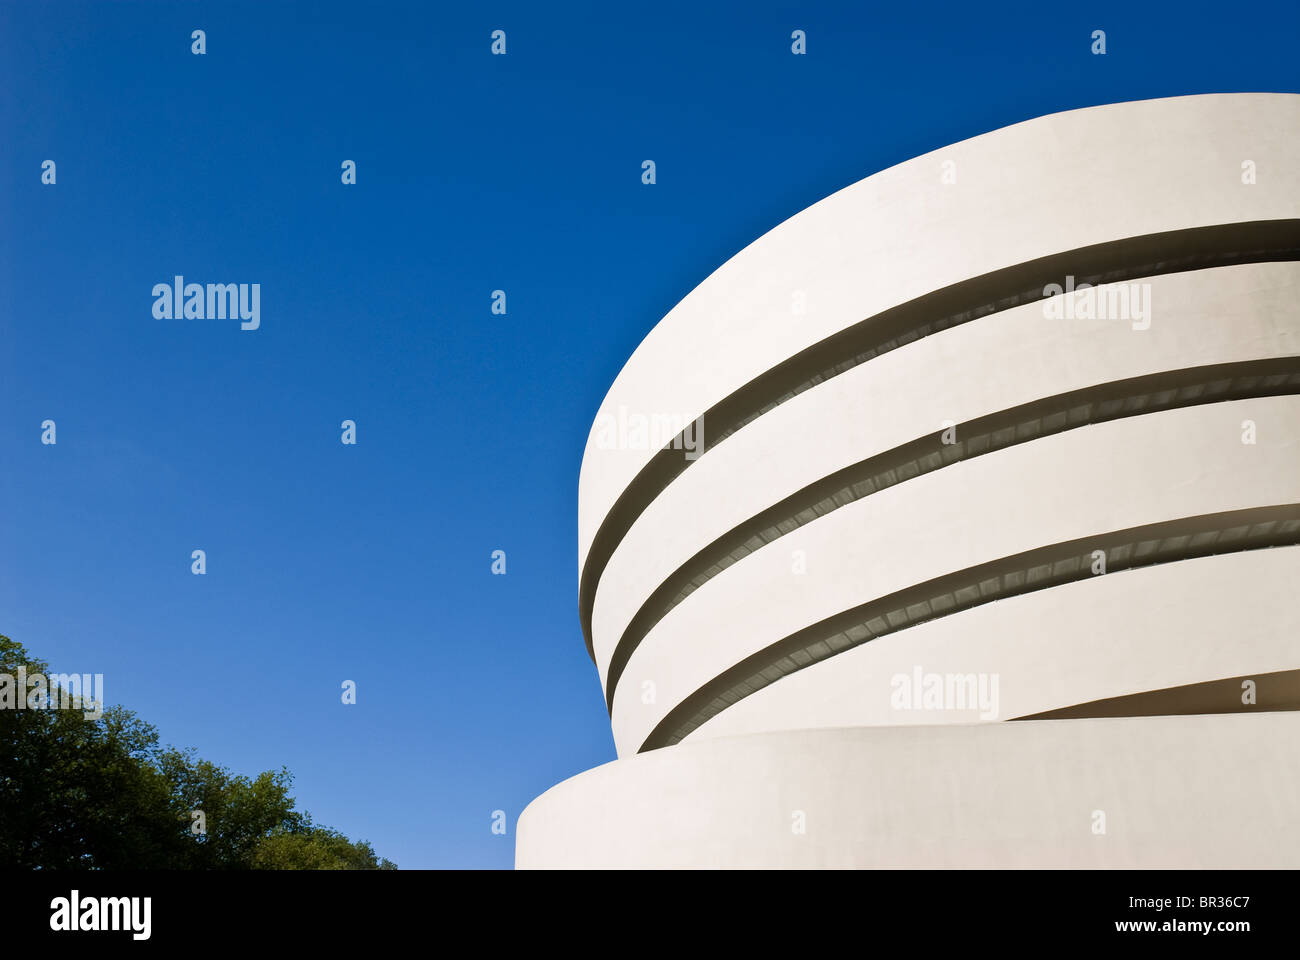 Le Guggenheim Museum, New York. Frank Lloyd Wright, architecte. Photo Stock